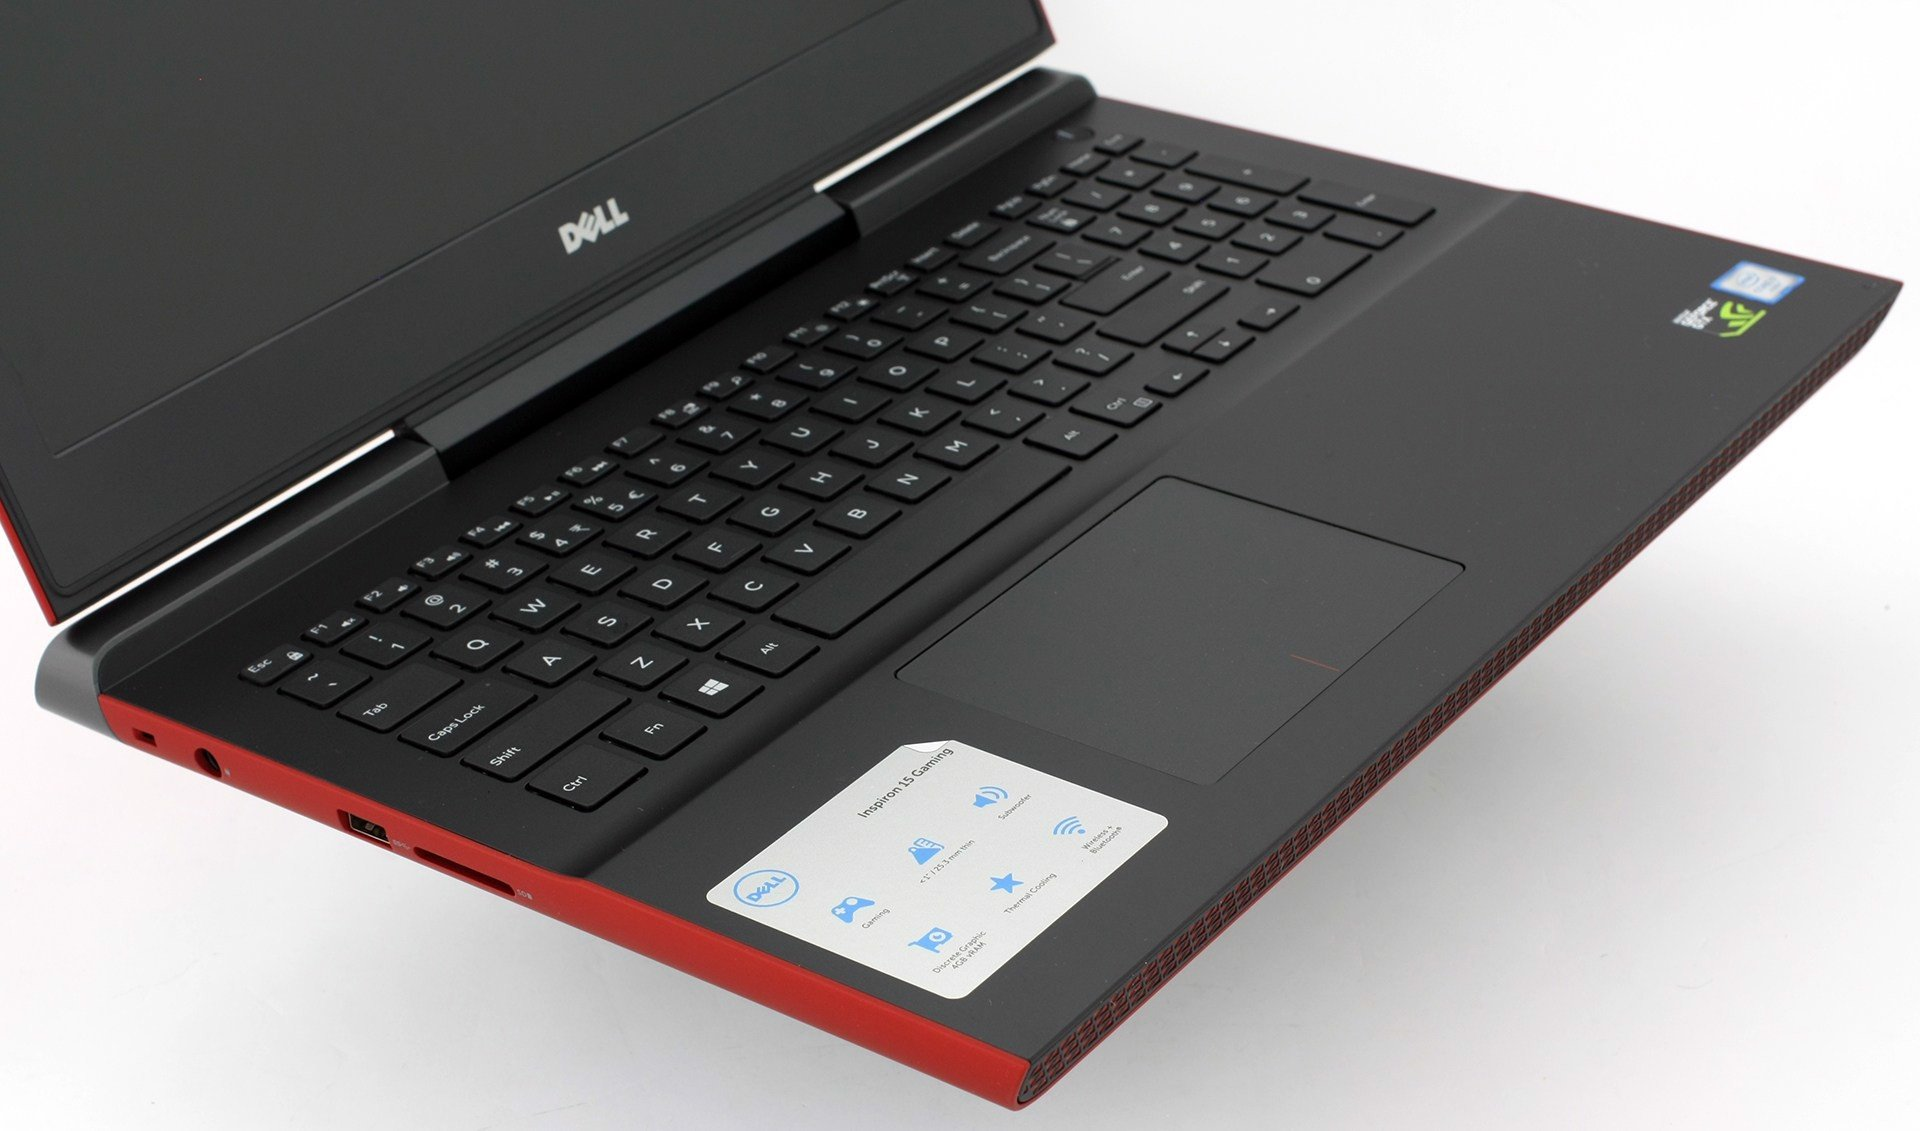 Dell Gaming Inspiron 7567 Core I5-7300HQ